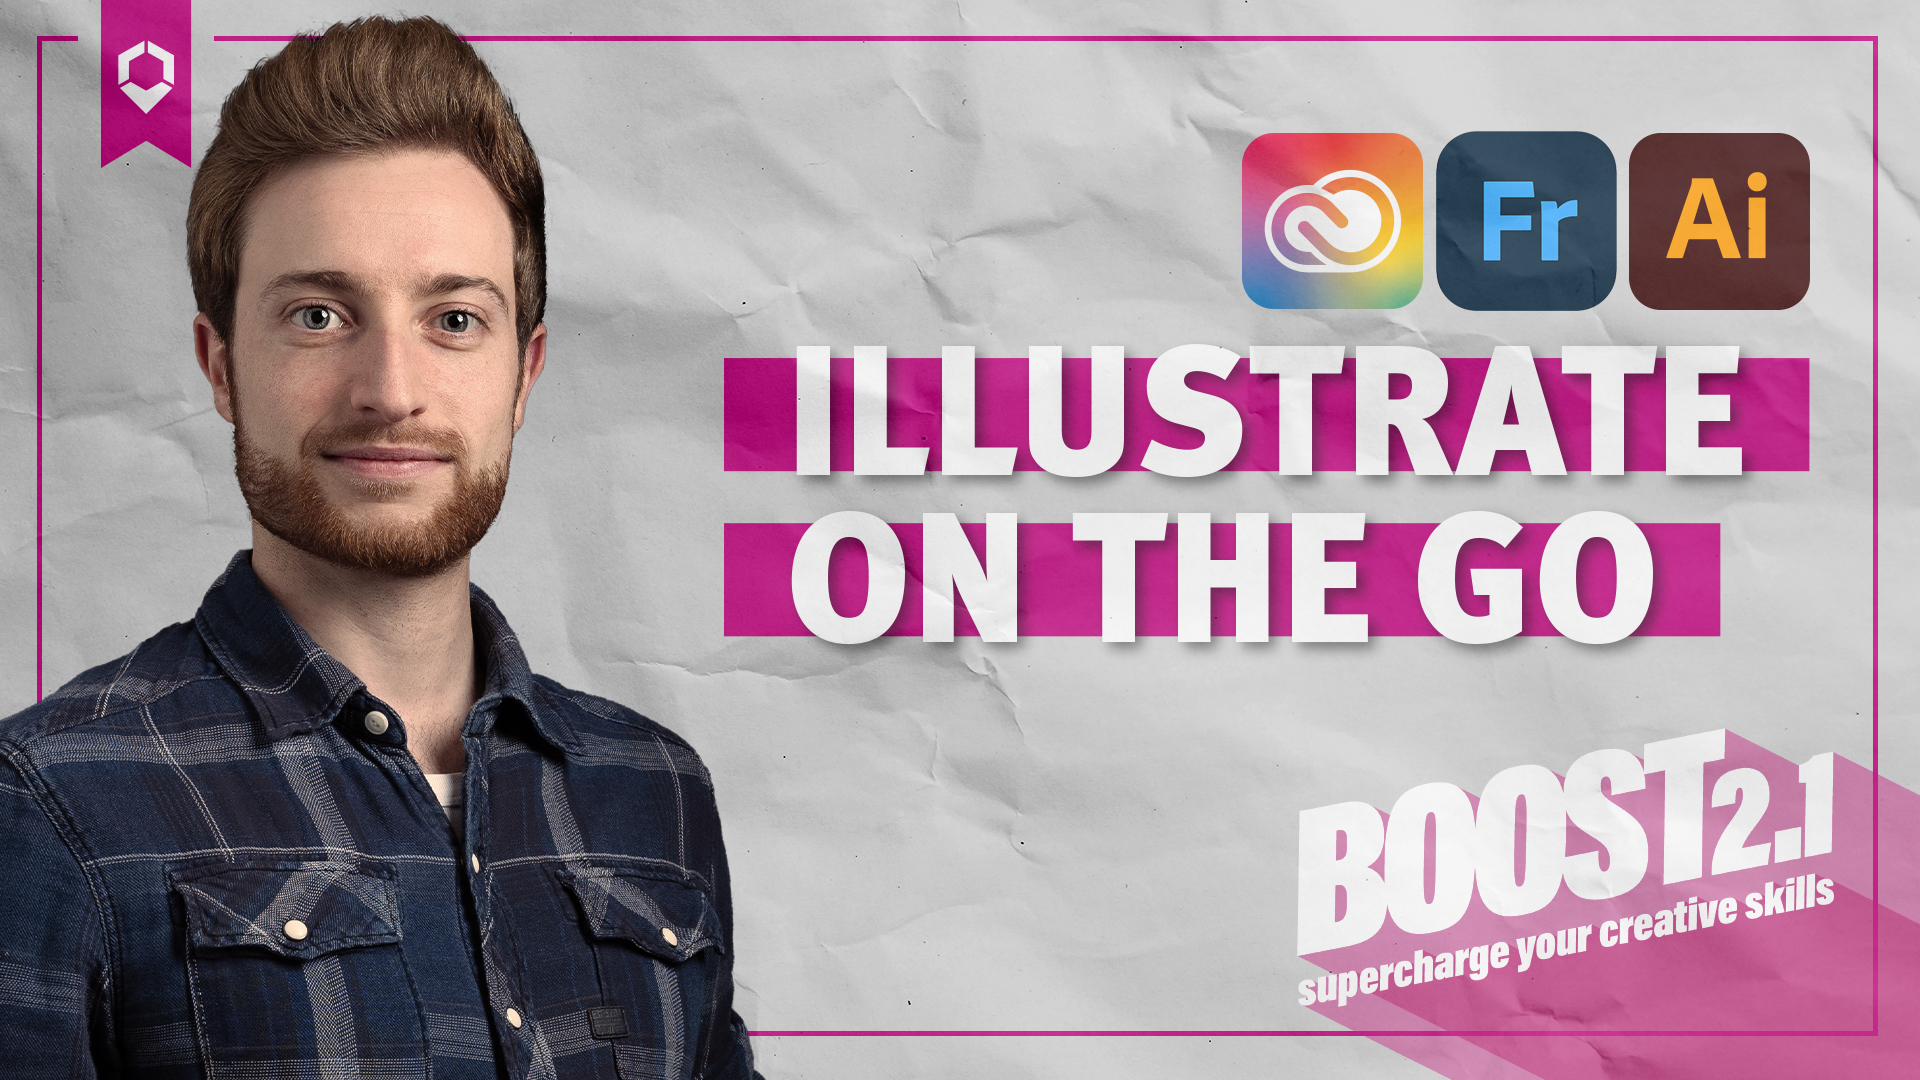 Boost-Illustrate on the go